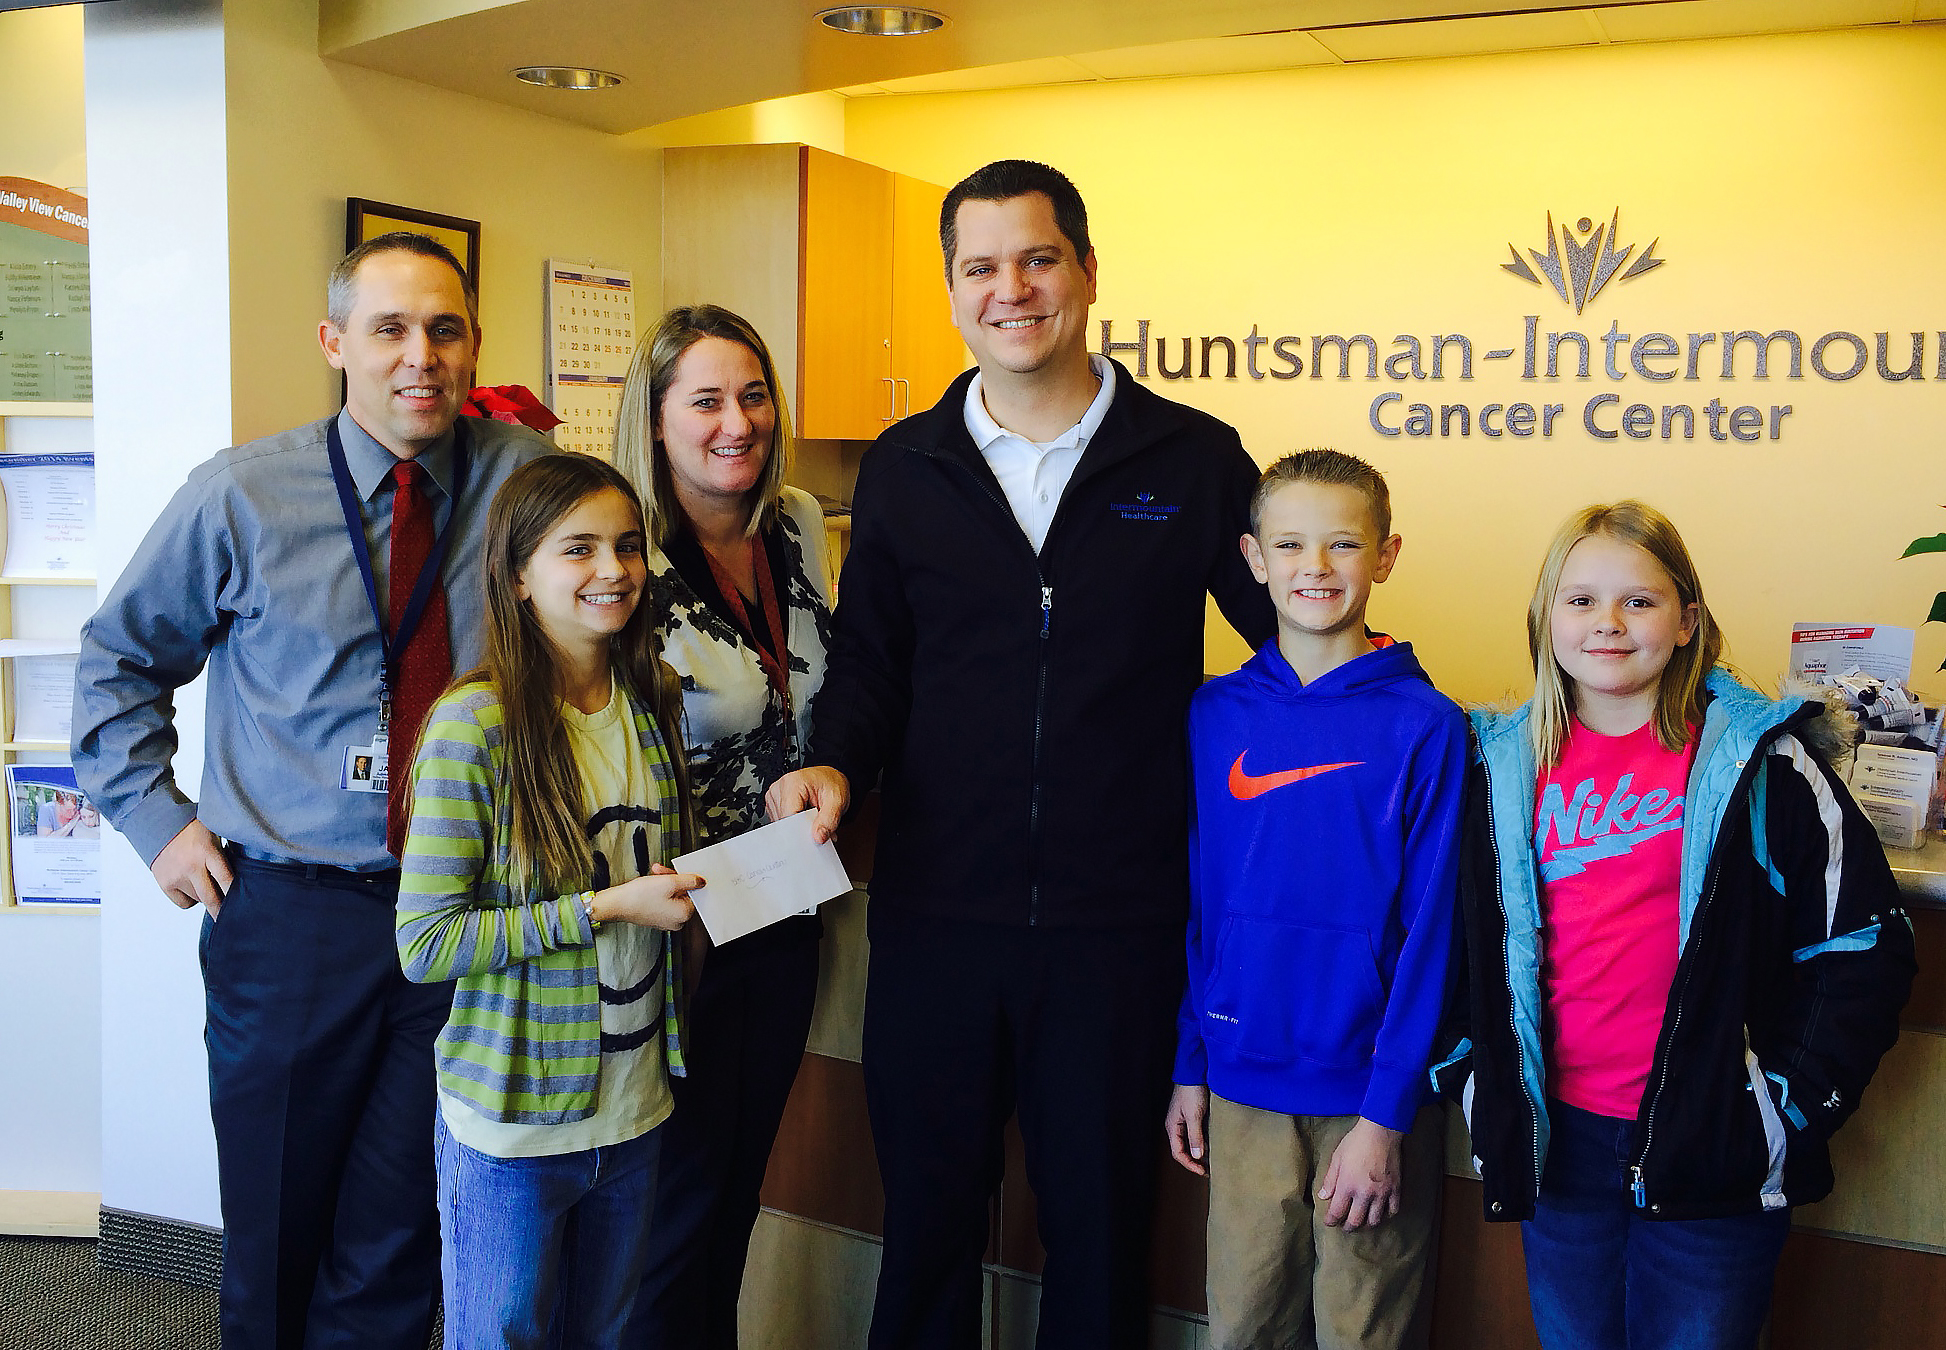 Students and teachers pose at the Cancer Center as they deliver the check to help patients and families, Valley View Medical Center, Cedar City, Utah, Dec. 2, 2014 | Photo courtesy of Valley View Medical Center, St. George News